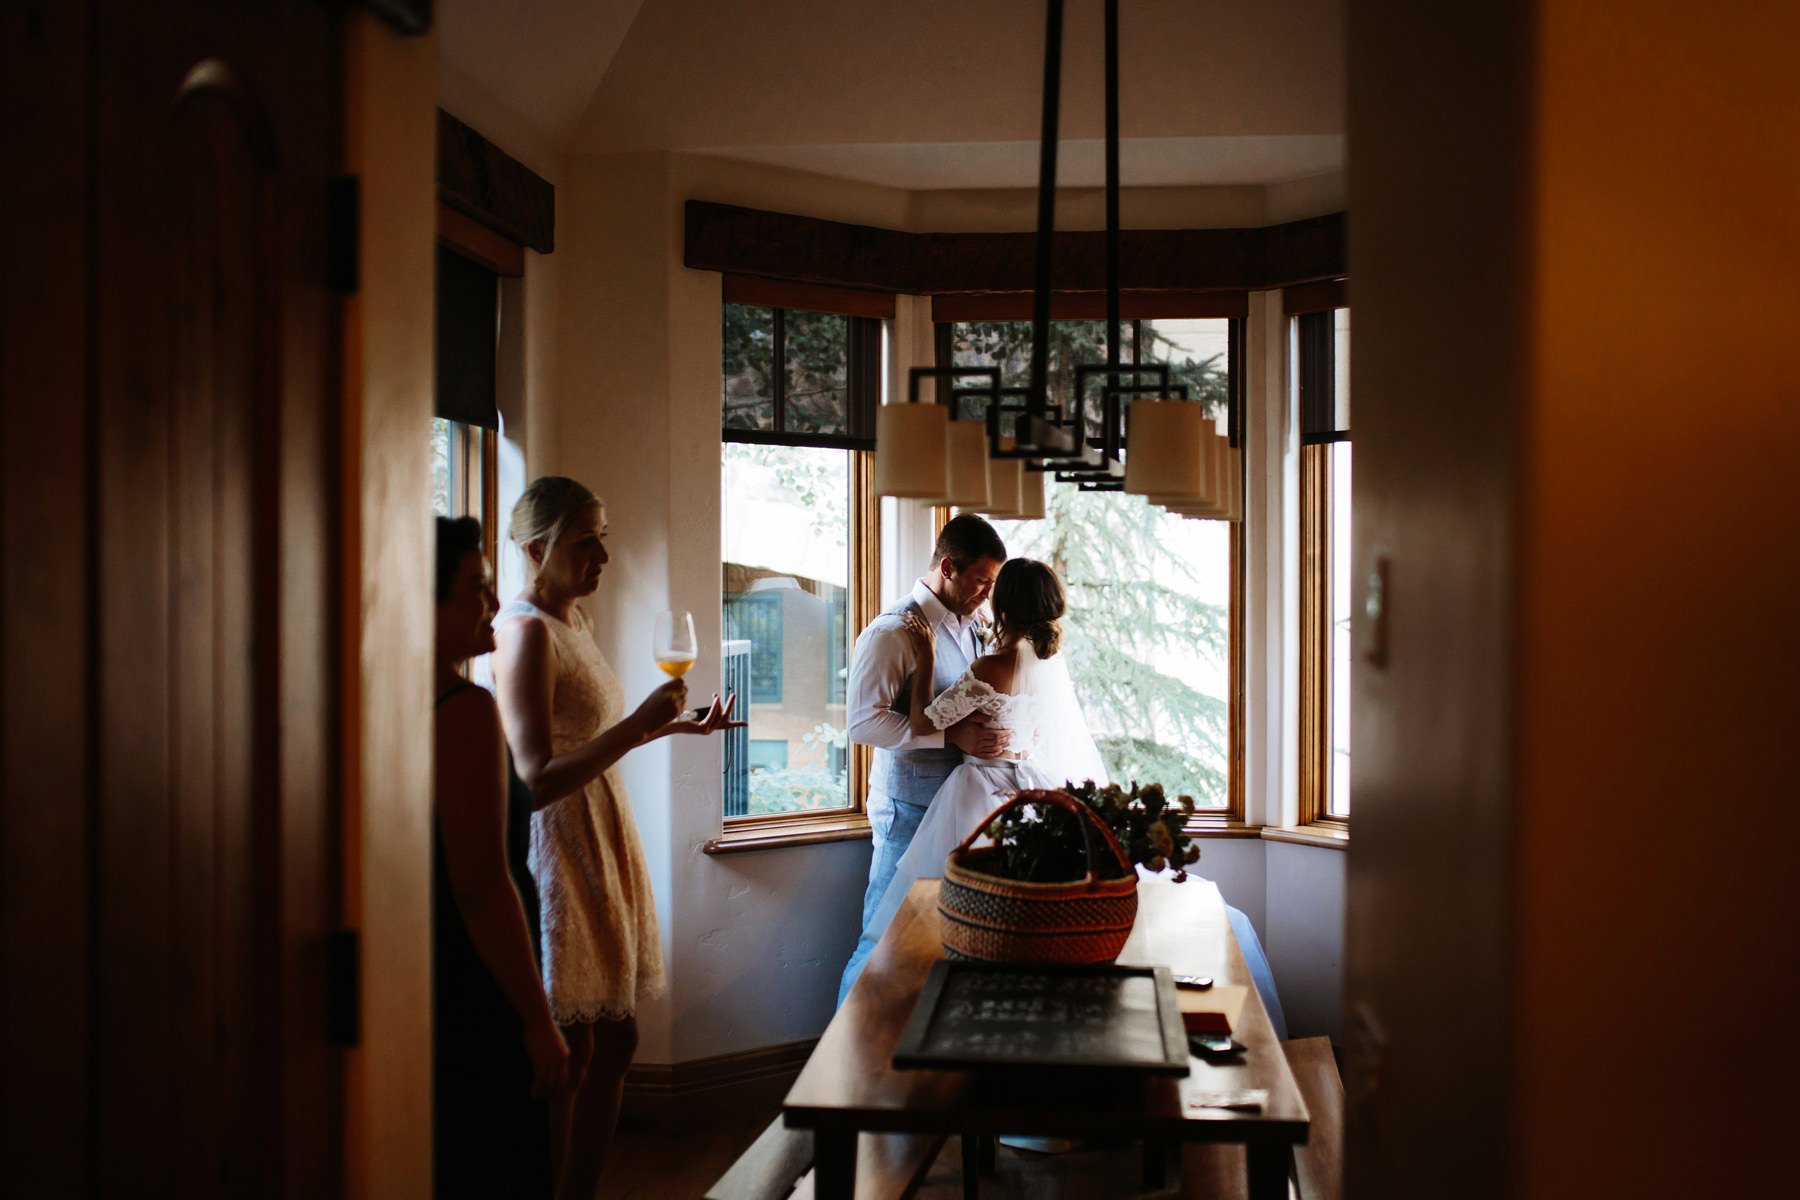 7_Vail Wedding Deck Mountain Top Wedding Vail, Colorado_Kindling Wedding Photography.JPG